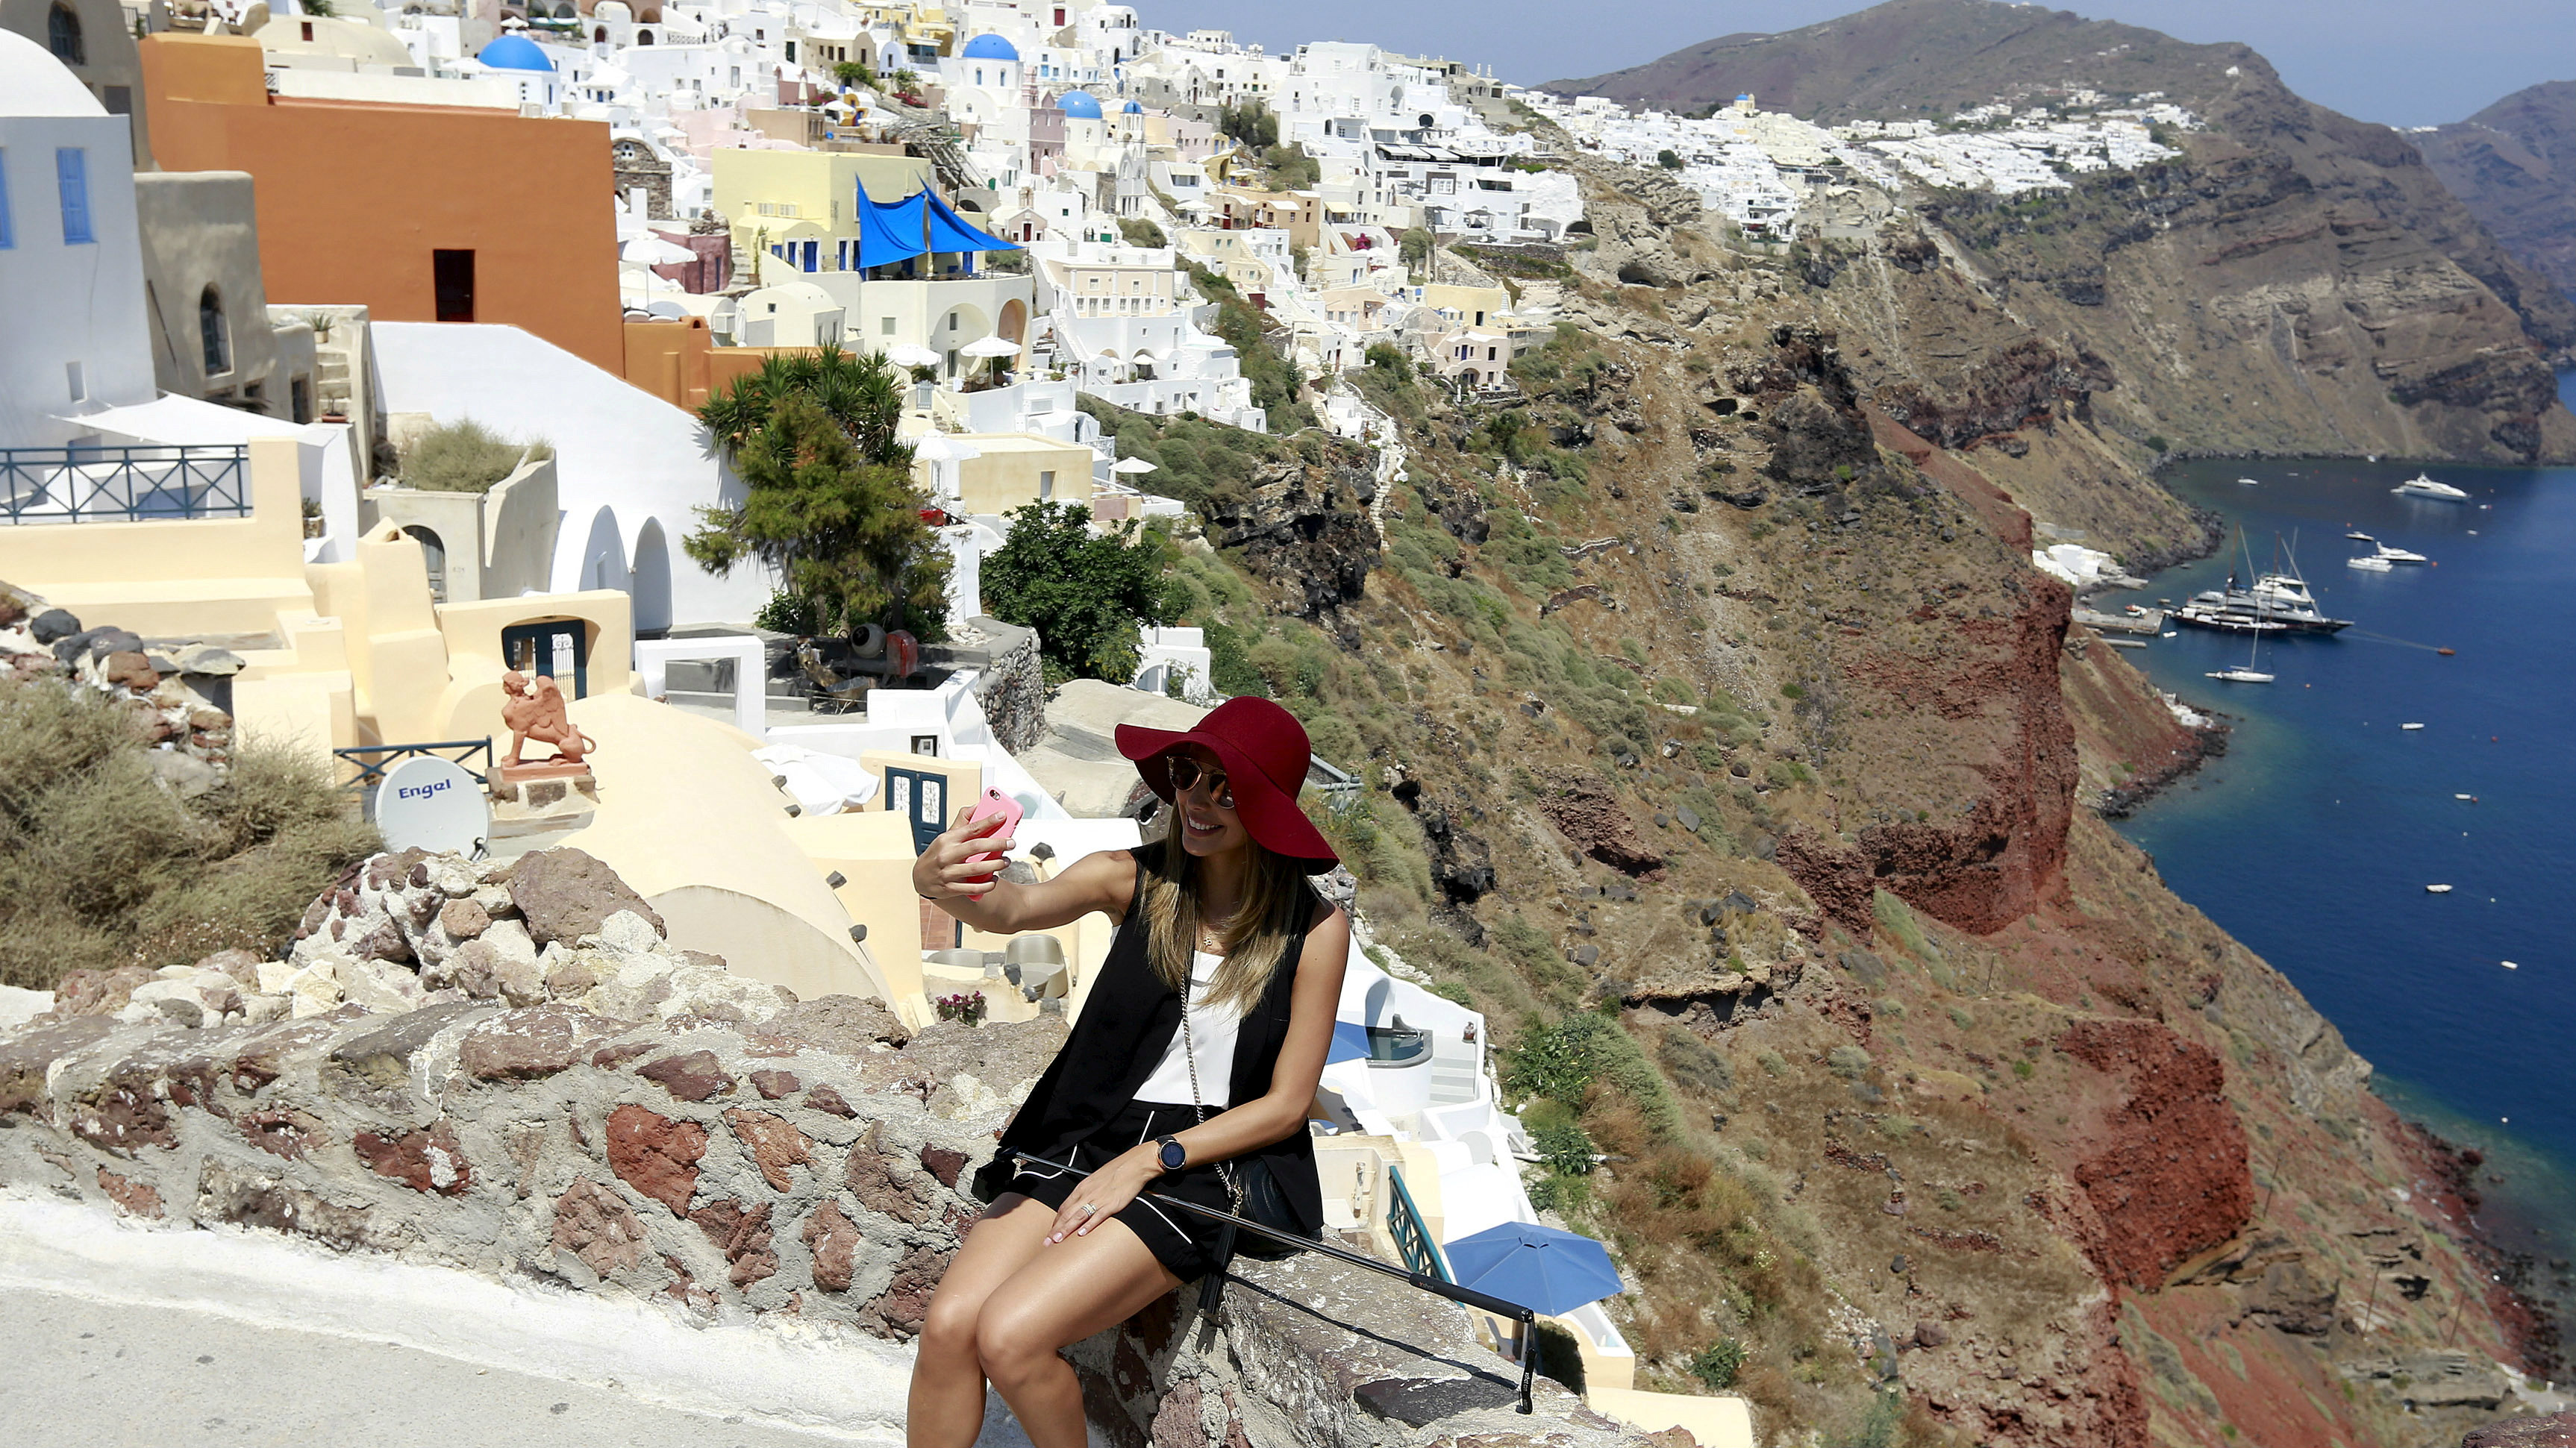 A tourist takes a selfie in the village of Oia on the Greek island of Santorini, Greece.